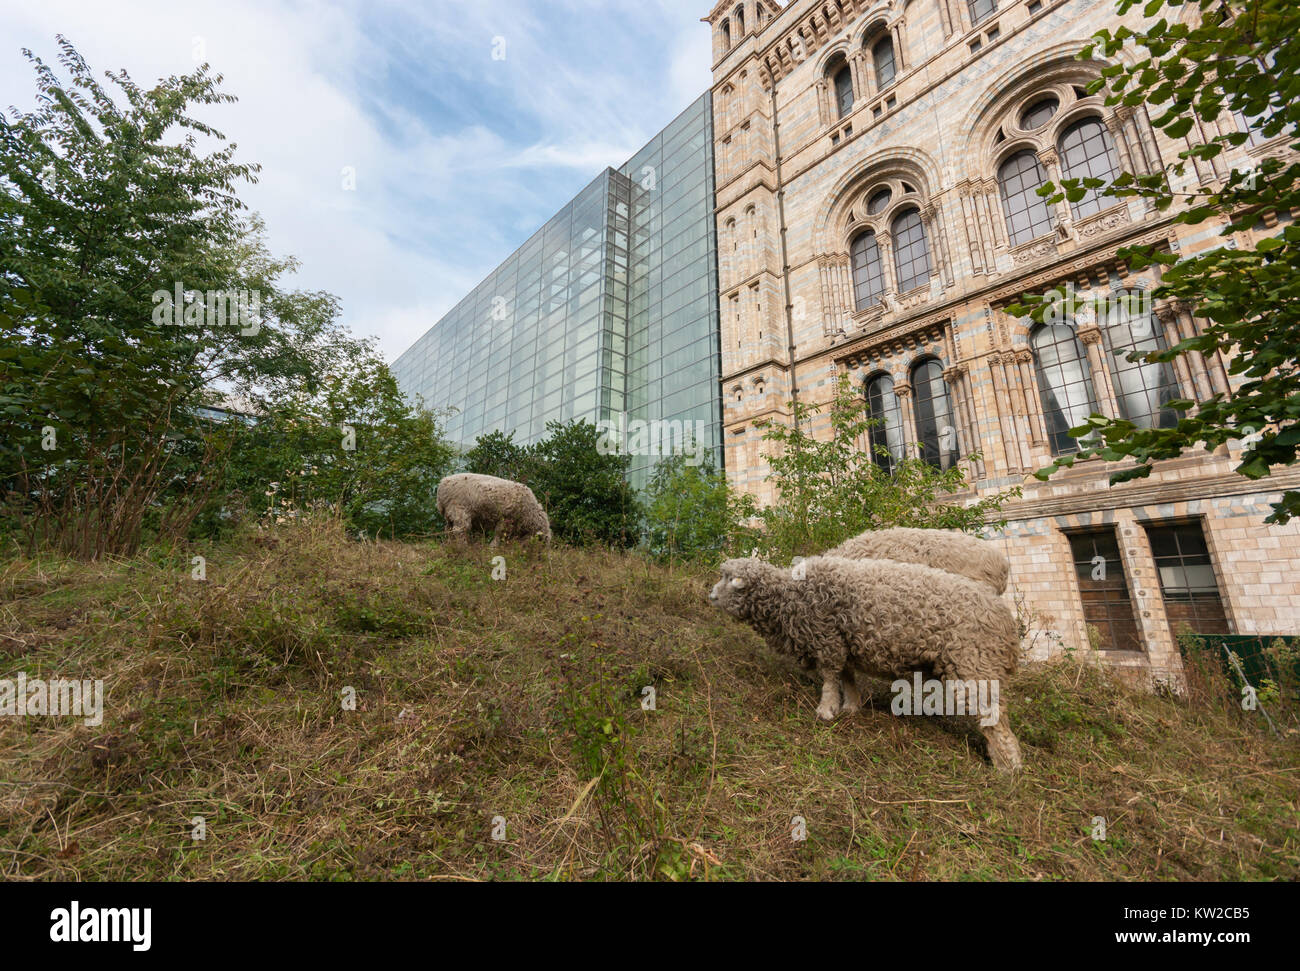 Sheep flock (from the London Wetland Centre) grazing the meadow in the Wildlife Garden of the Natural History Museum - Stock Image